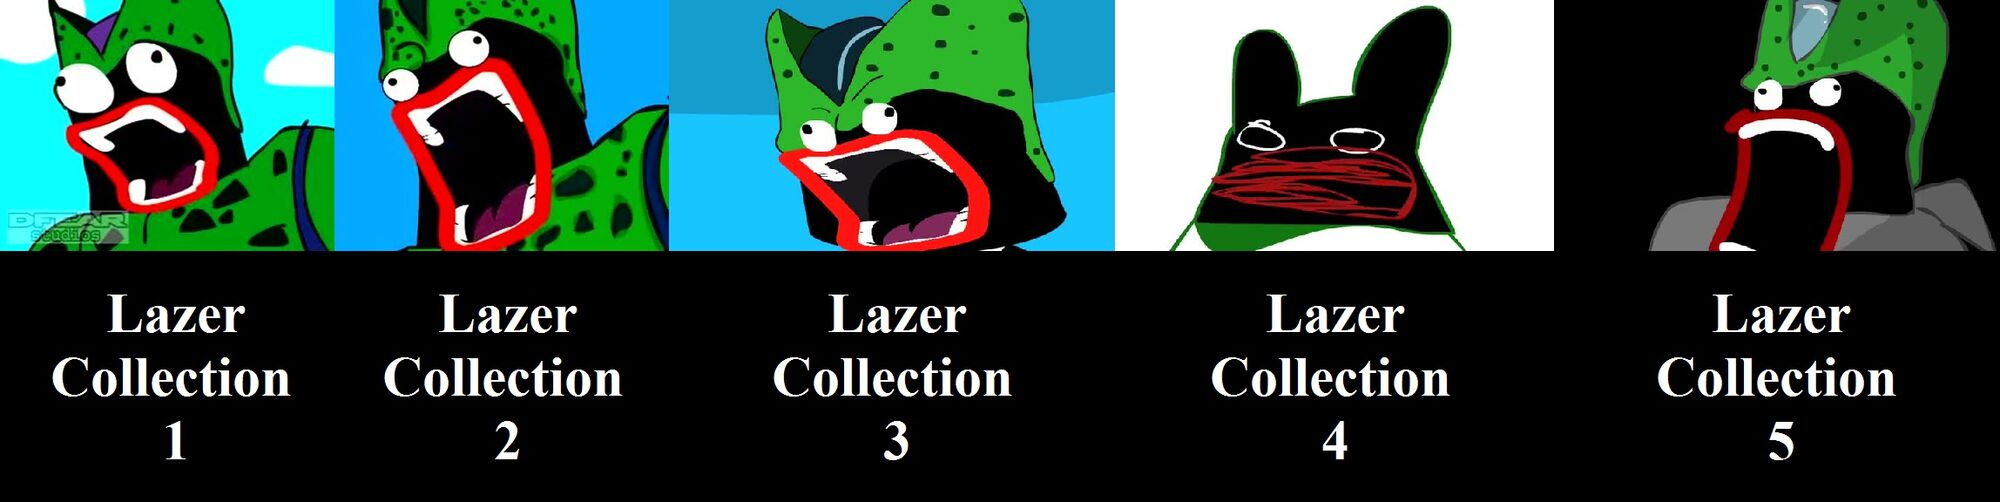 image  cell lclc comparison  the lazer collection wiki  - image  cell lclc comparison  the lazer collection wiki  fandompowered by wikia